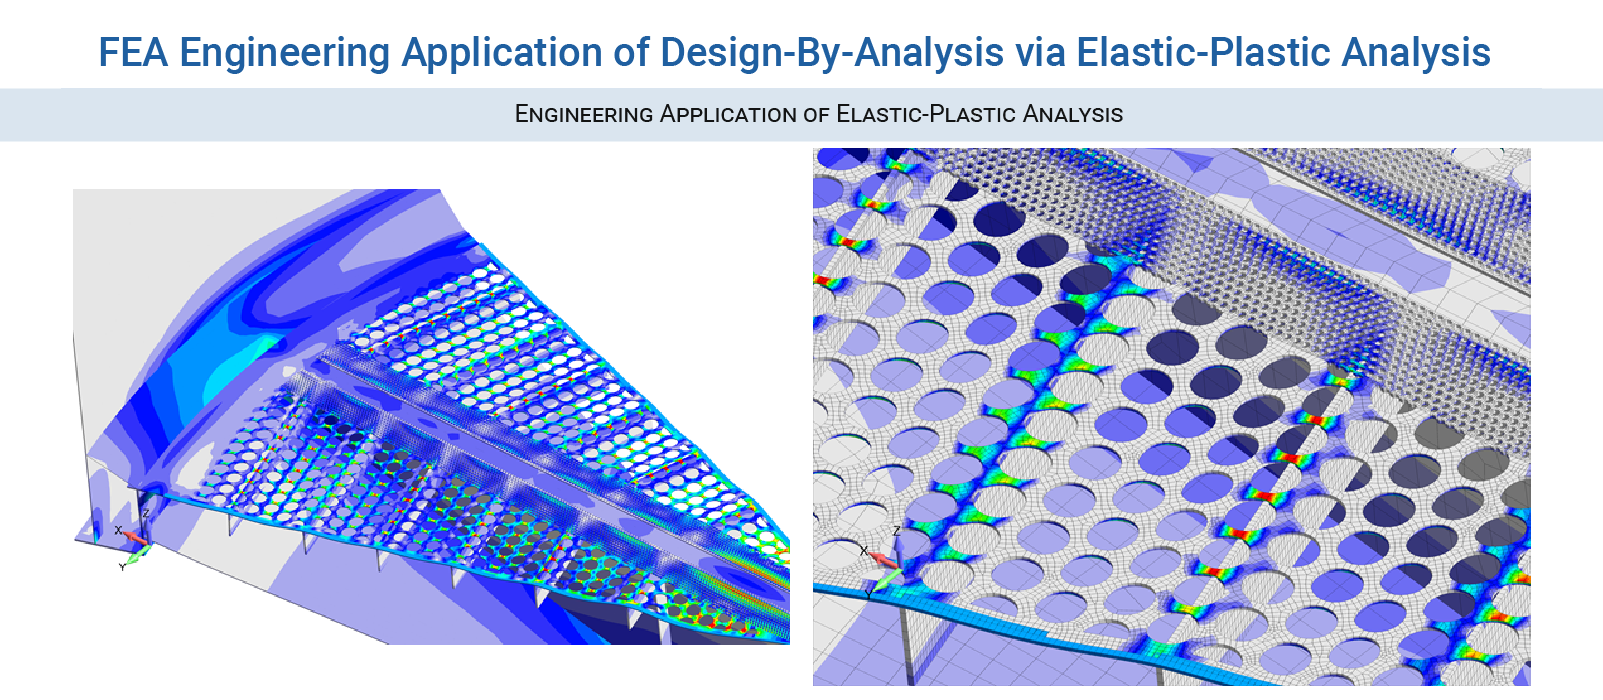 FEA BPVC Consulting Services - Engineering Application of Elastic-Plastic Analysis